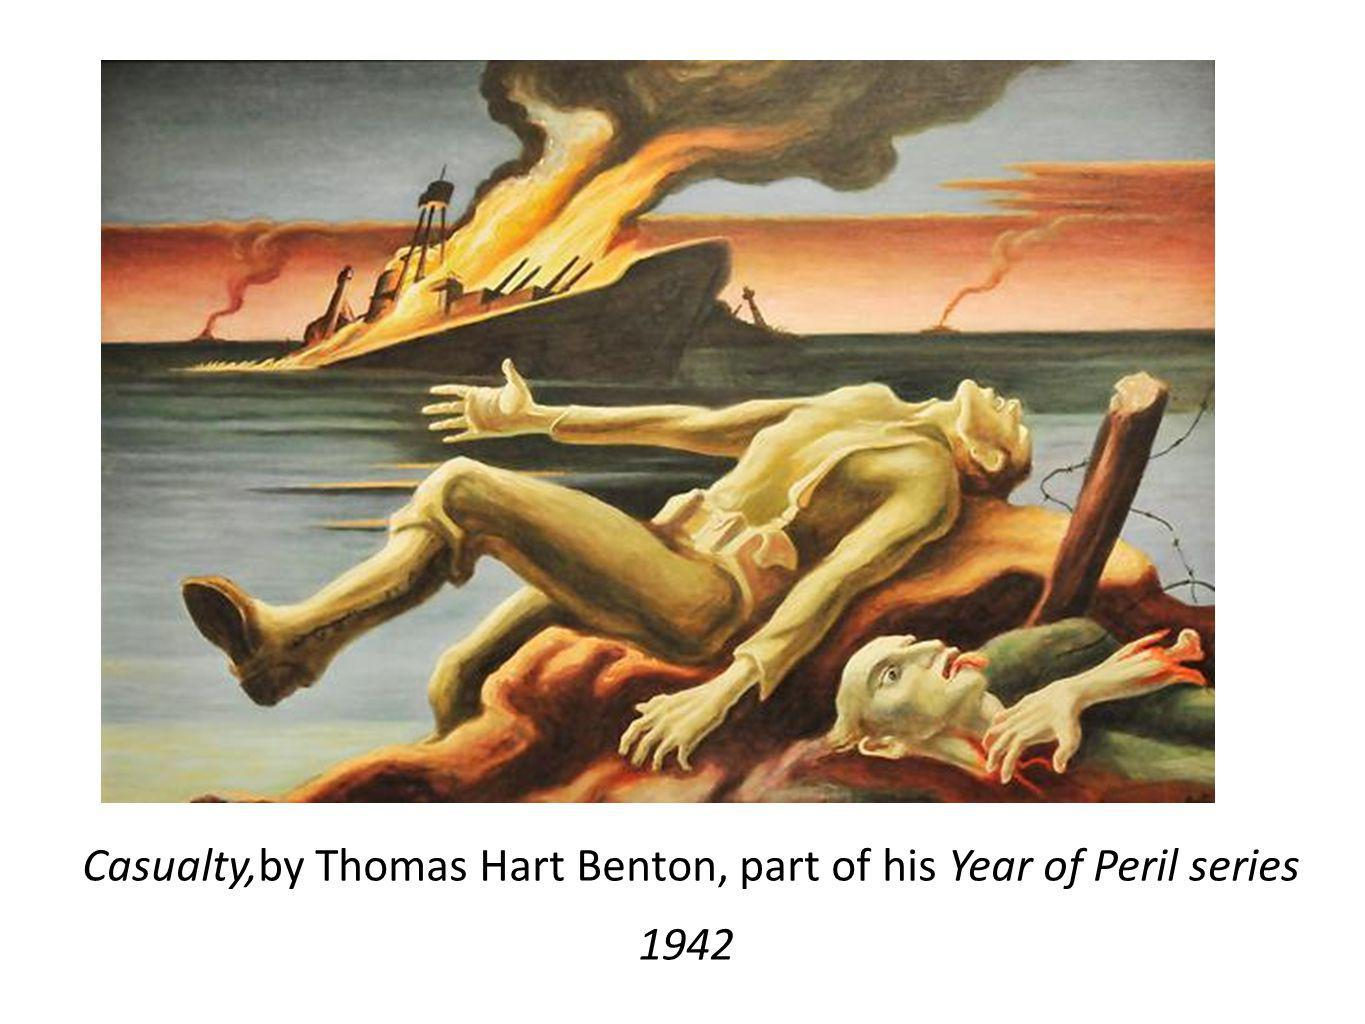 Casualty,by Thomas Hart Benton, part of his Year of Peril series